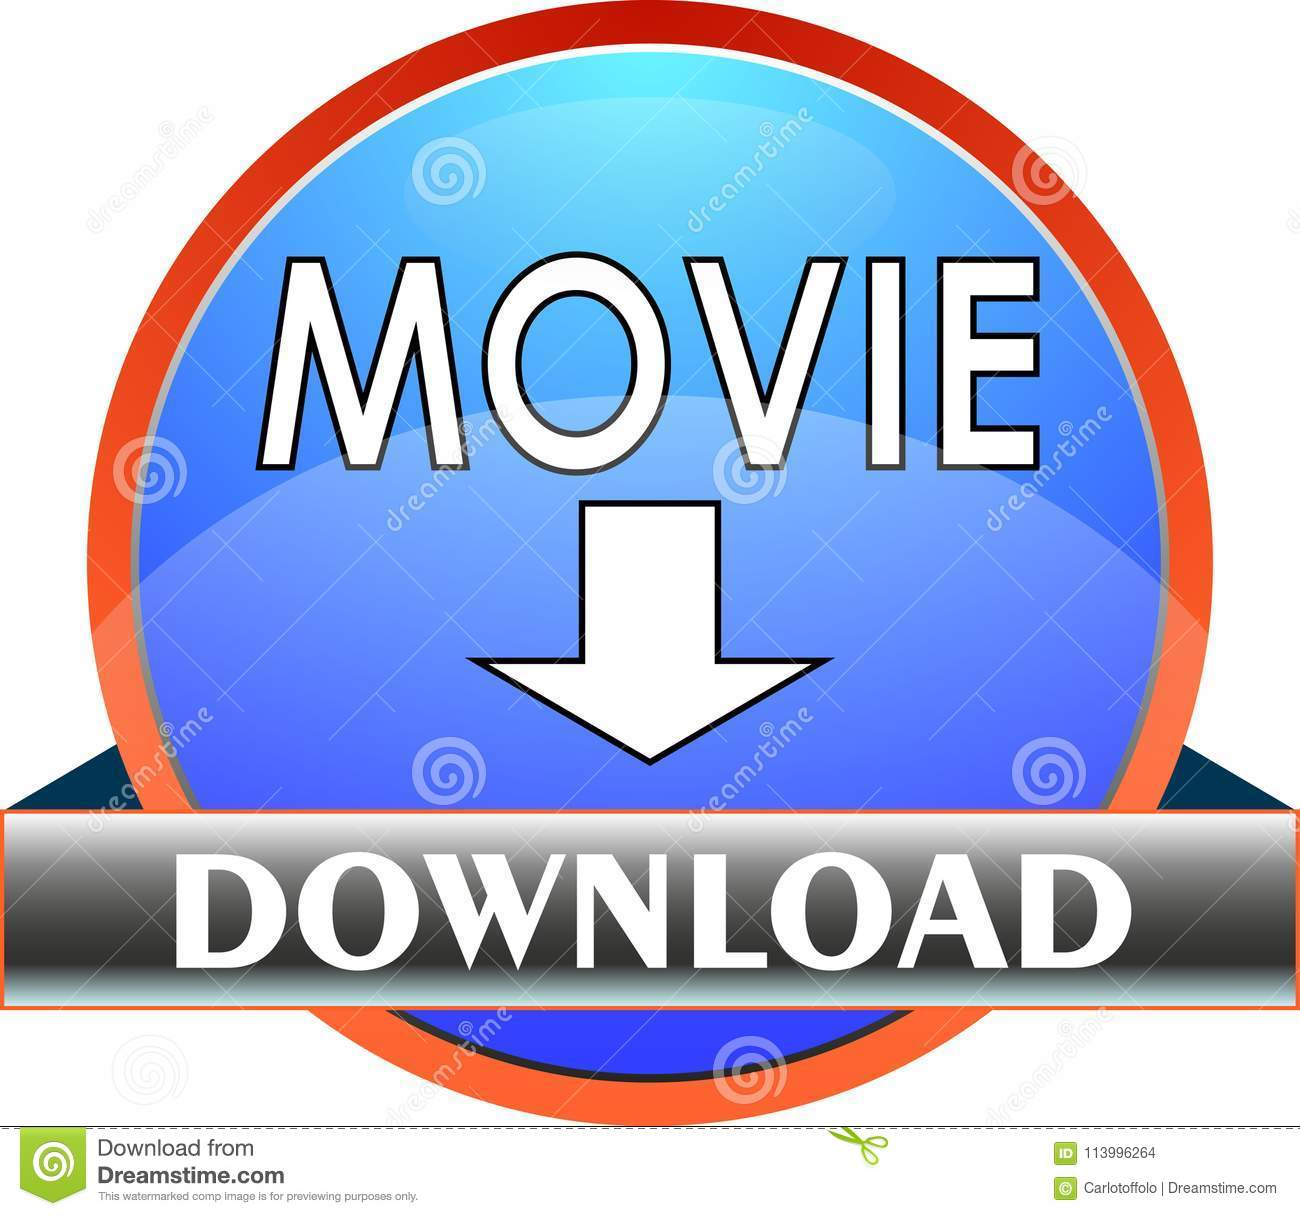 Push Button MOVIE Download - Vector Stock Vector - Illustration of